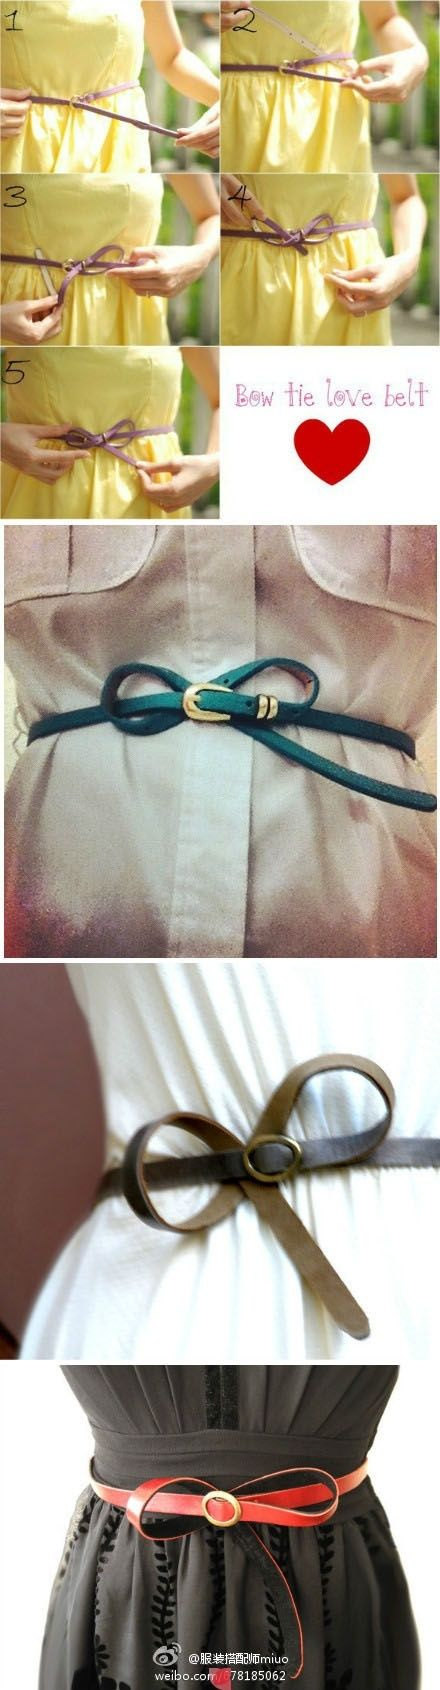 Whoa whoa WHOA!!! A belt bow?!?! I love it! And my belts ...